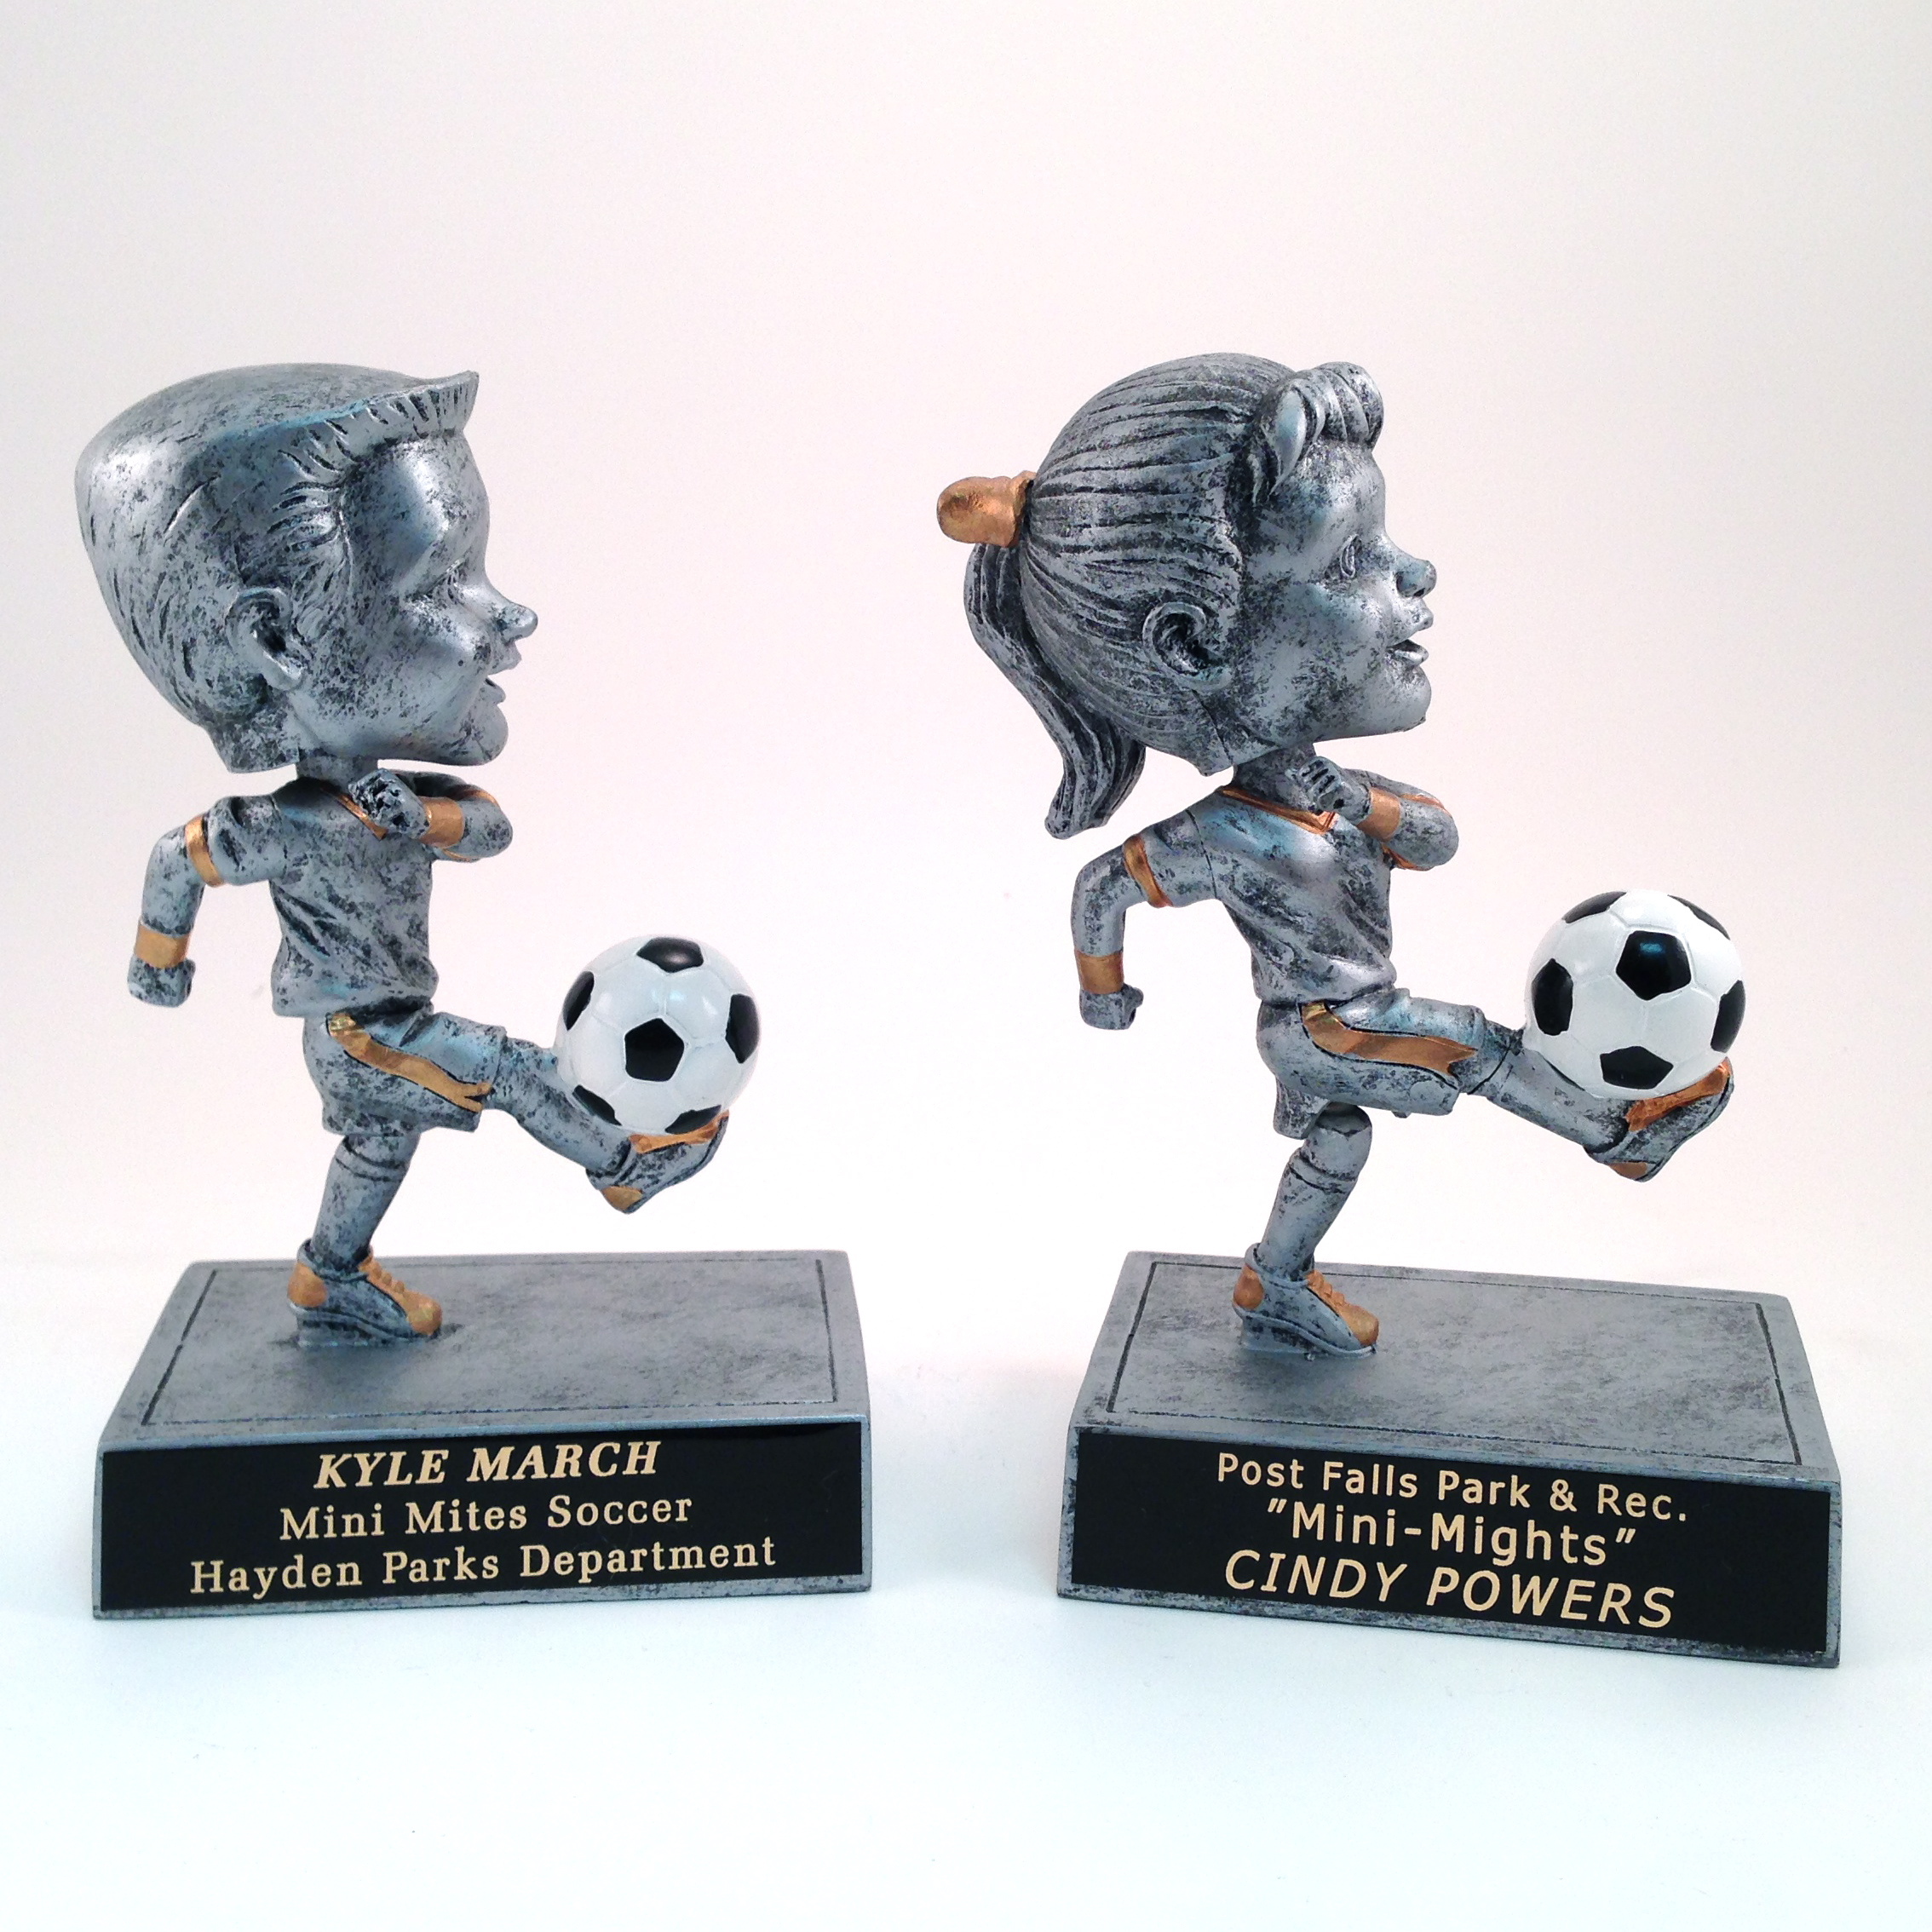 Soccer Bobbleheads - $18.02 each (Includes tax & engraving). Specify Male or Female figures. [ITEM#:  16B ]